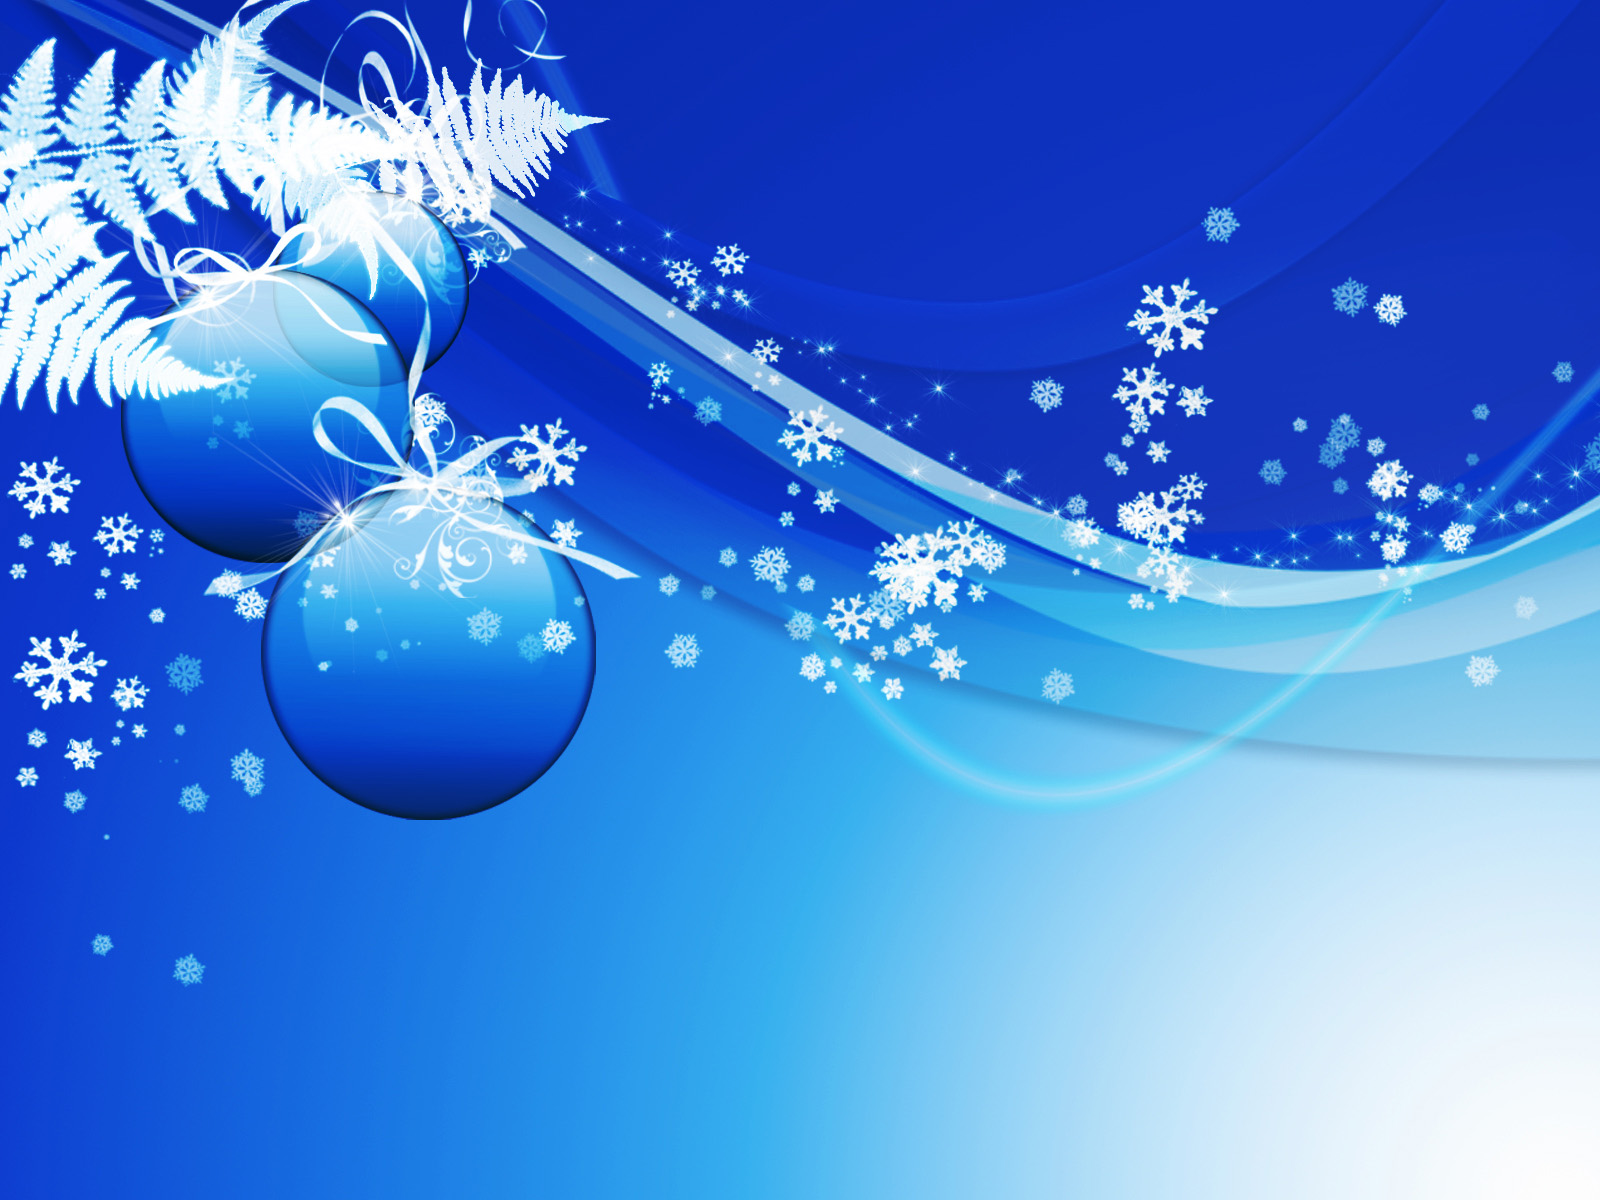 Christmas Holiday Backgrounds Wallpapers High Definition 1600x1200